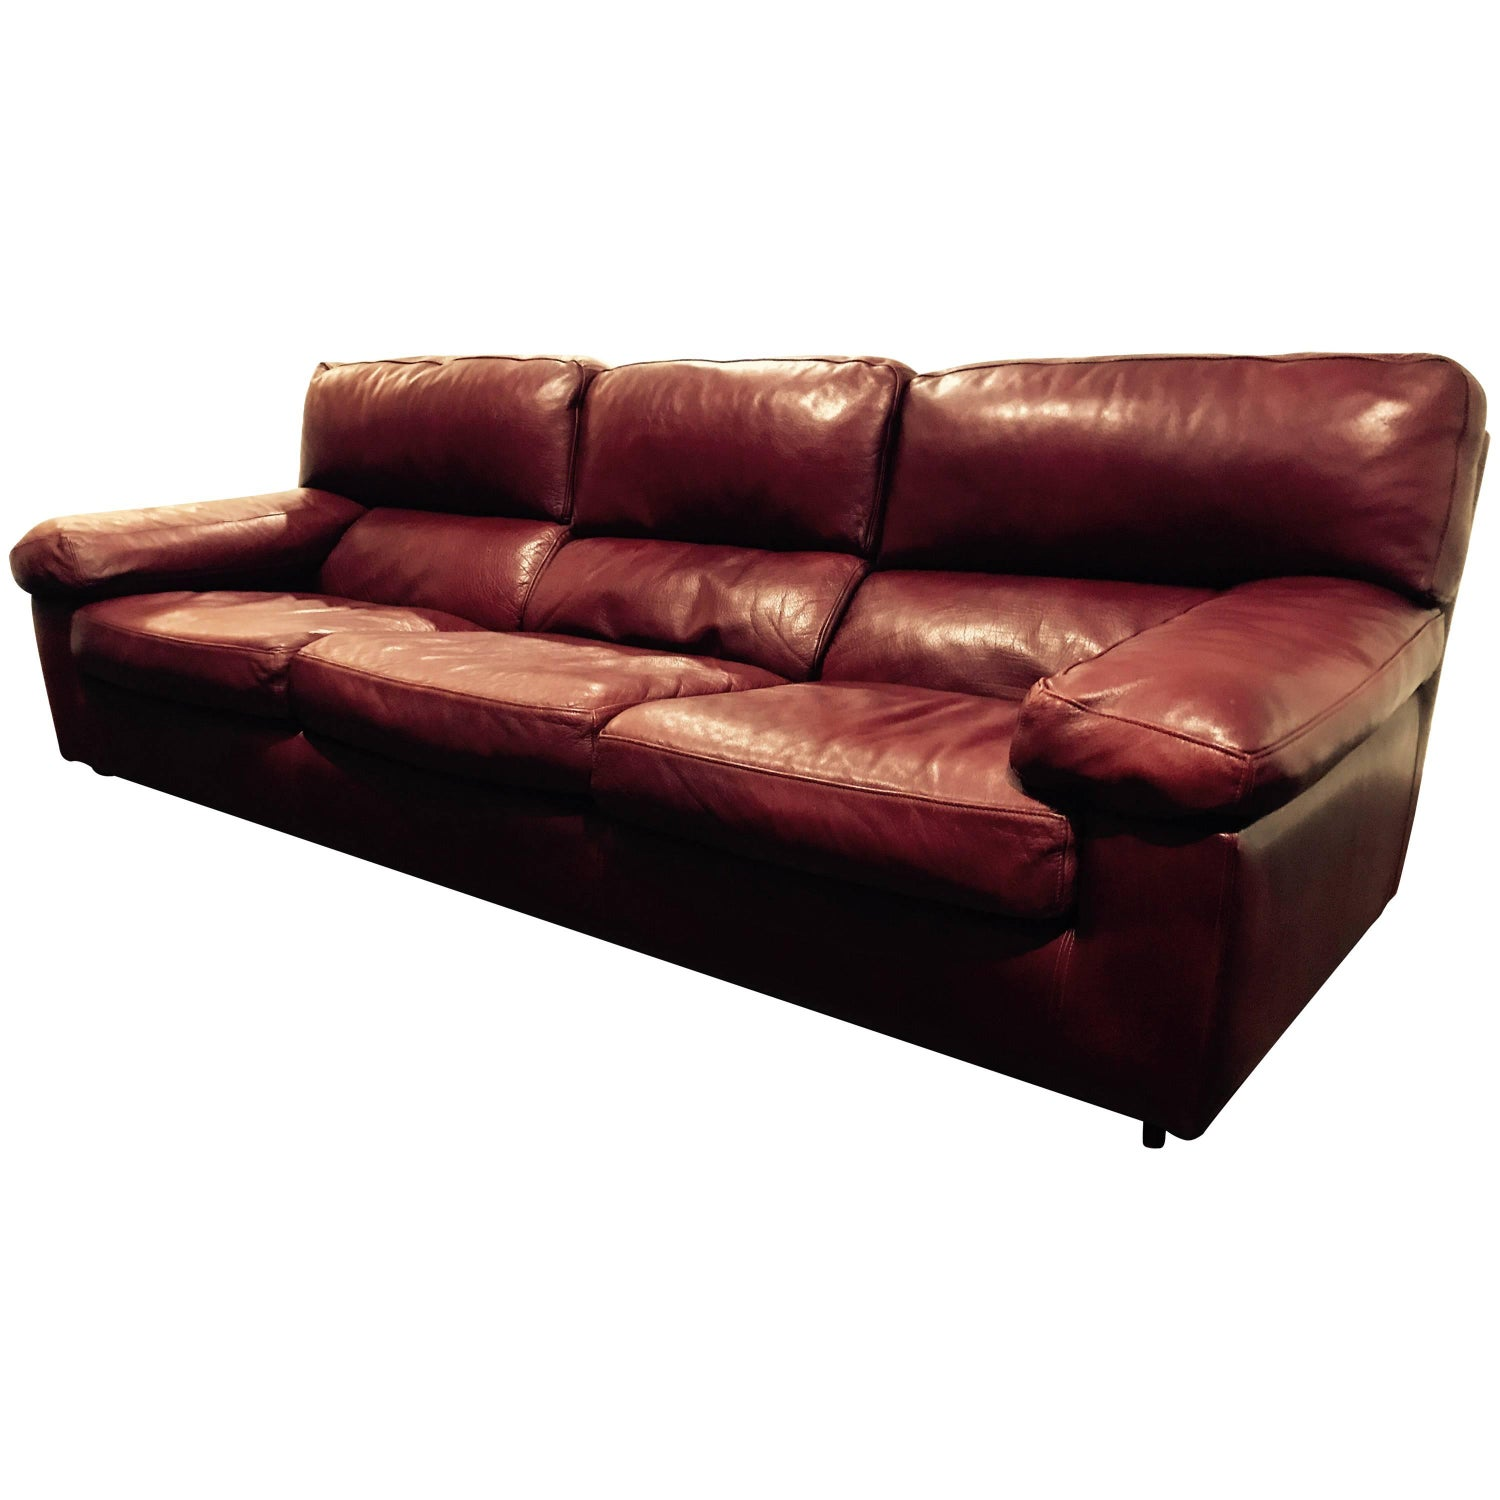 Roche Bobois Furniture Chairs Sofas Storage Cabinets & More